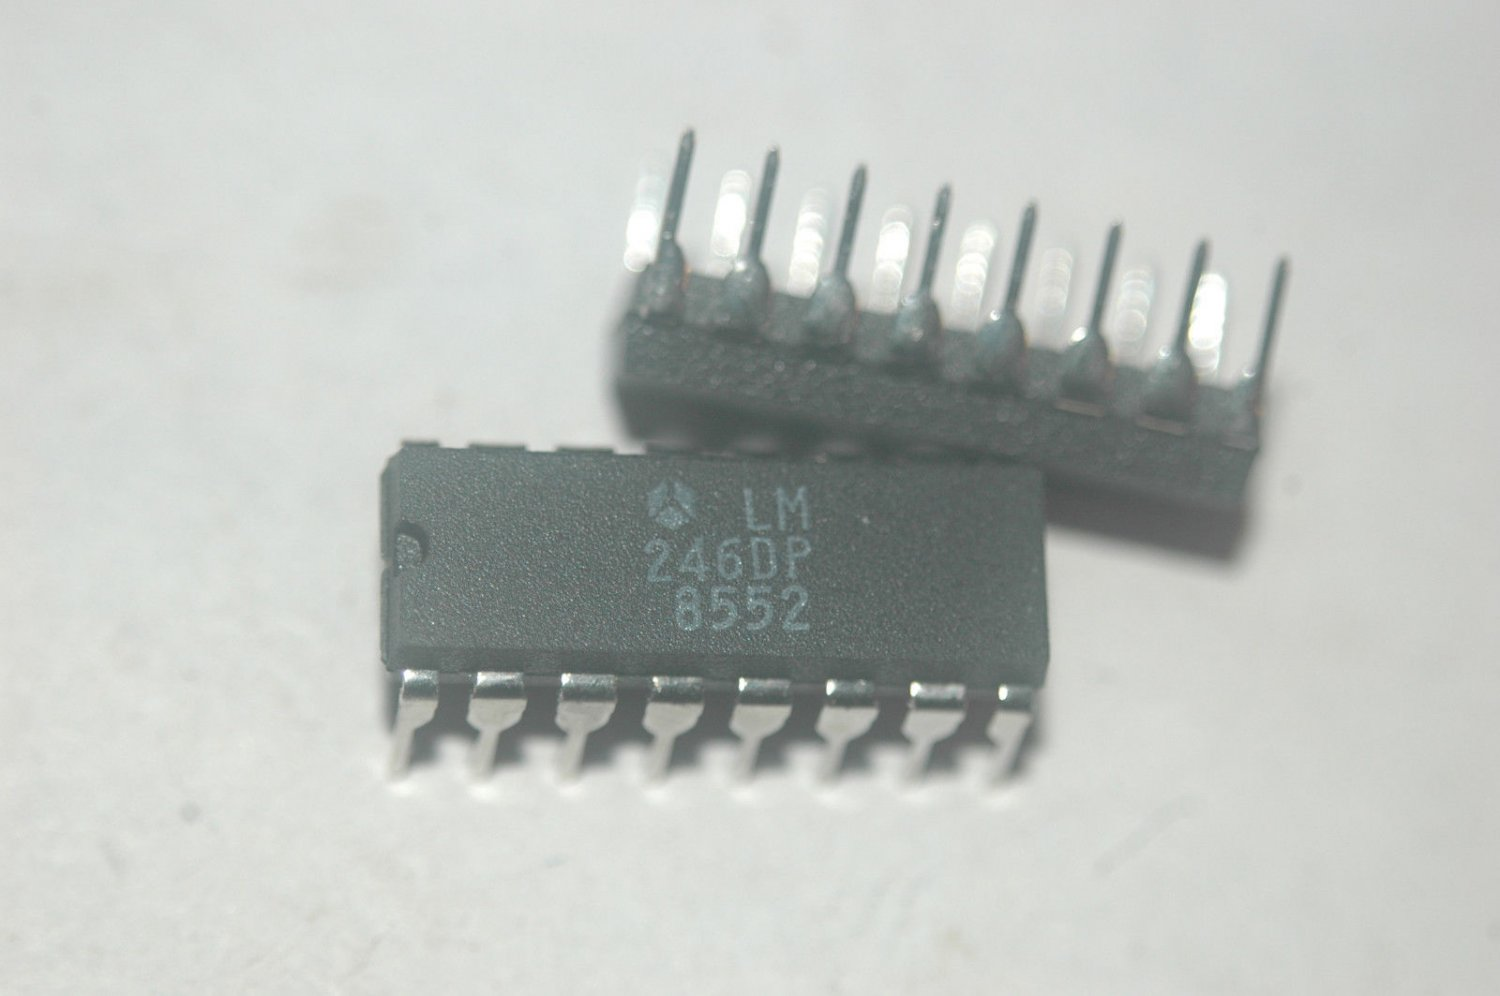 MITSUBISHI LM246DP 16-Pin Dip Amplifier Integrated Circuit New Lot Quantity-50